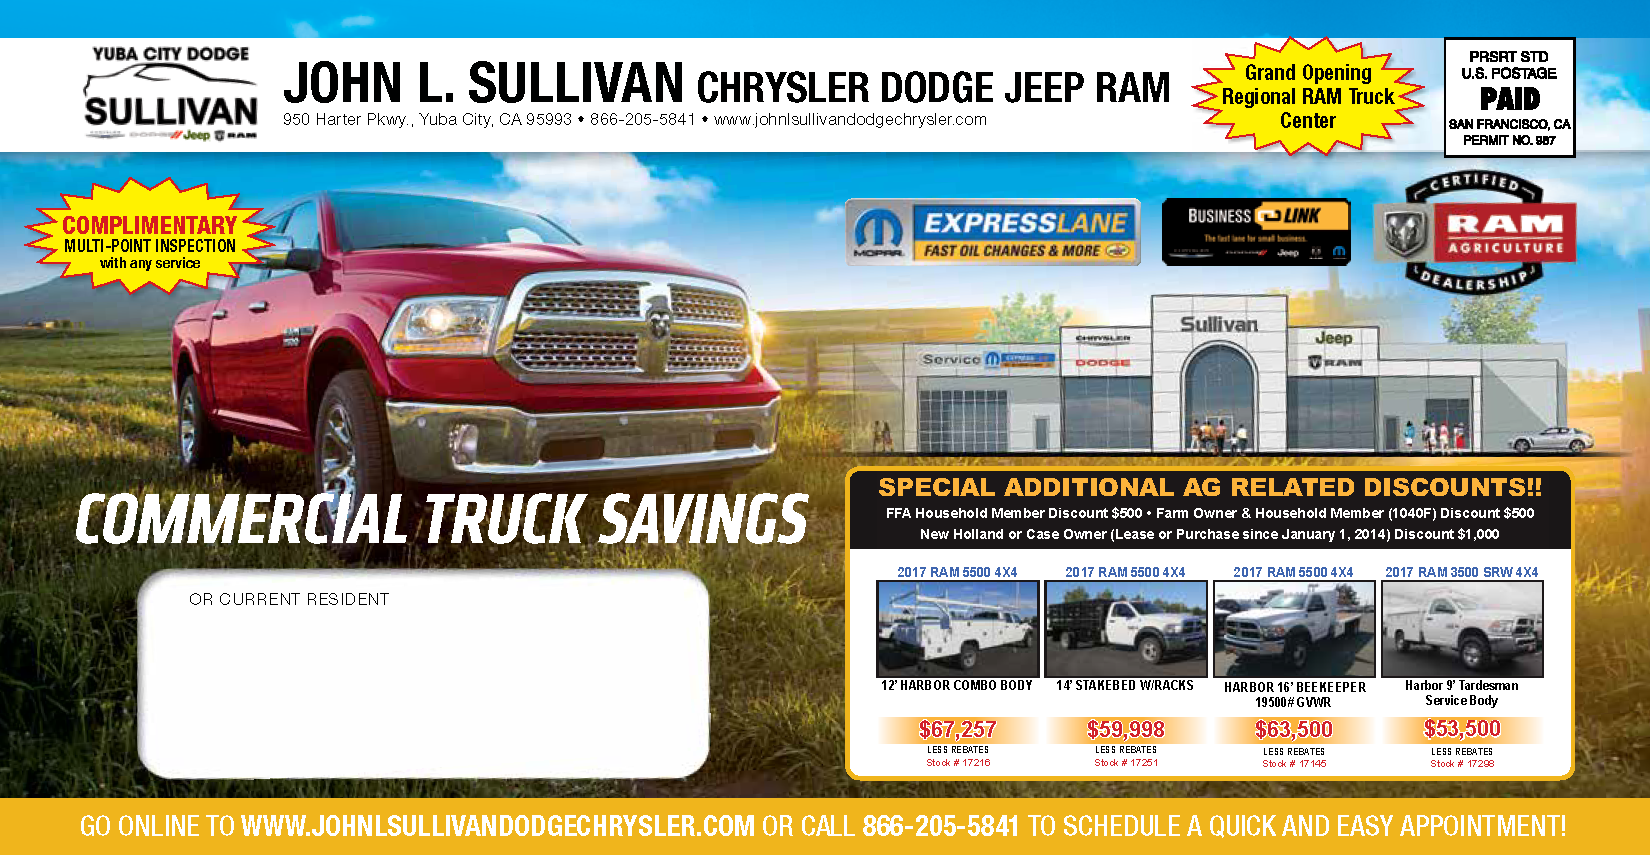 Yuba City Dodge Service Mailer